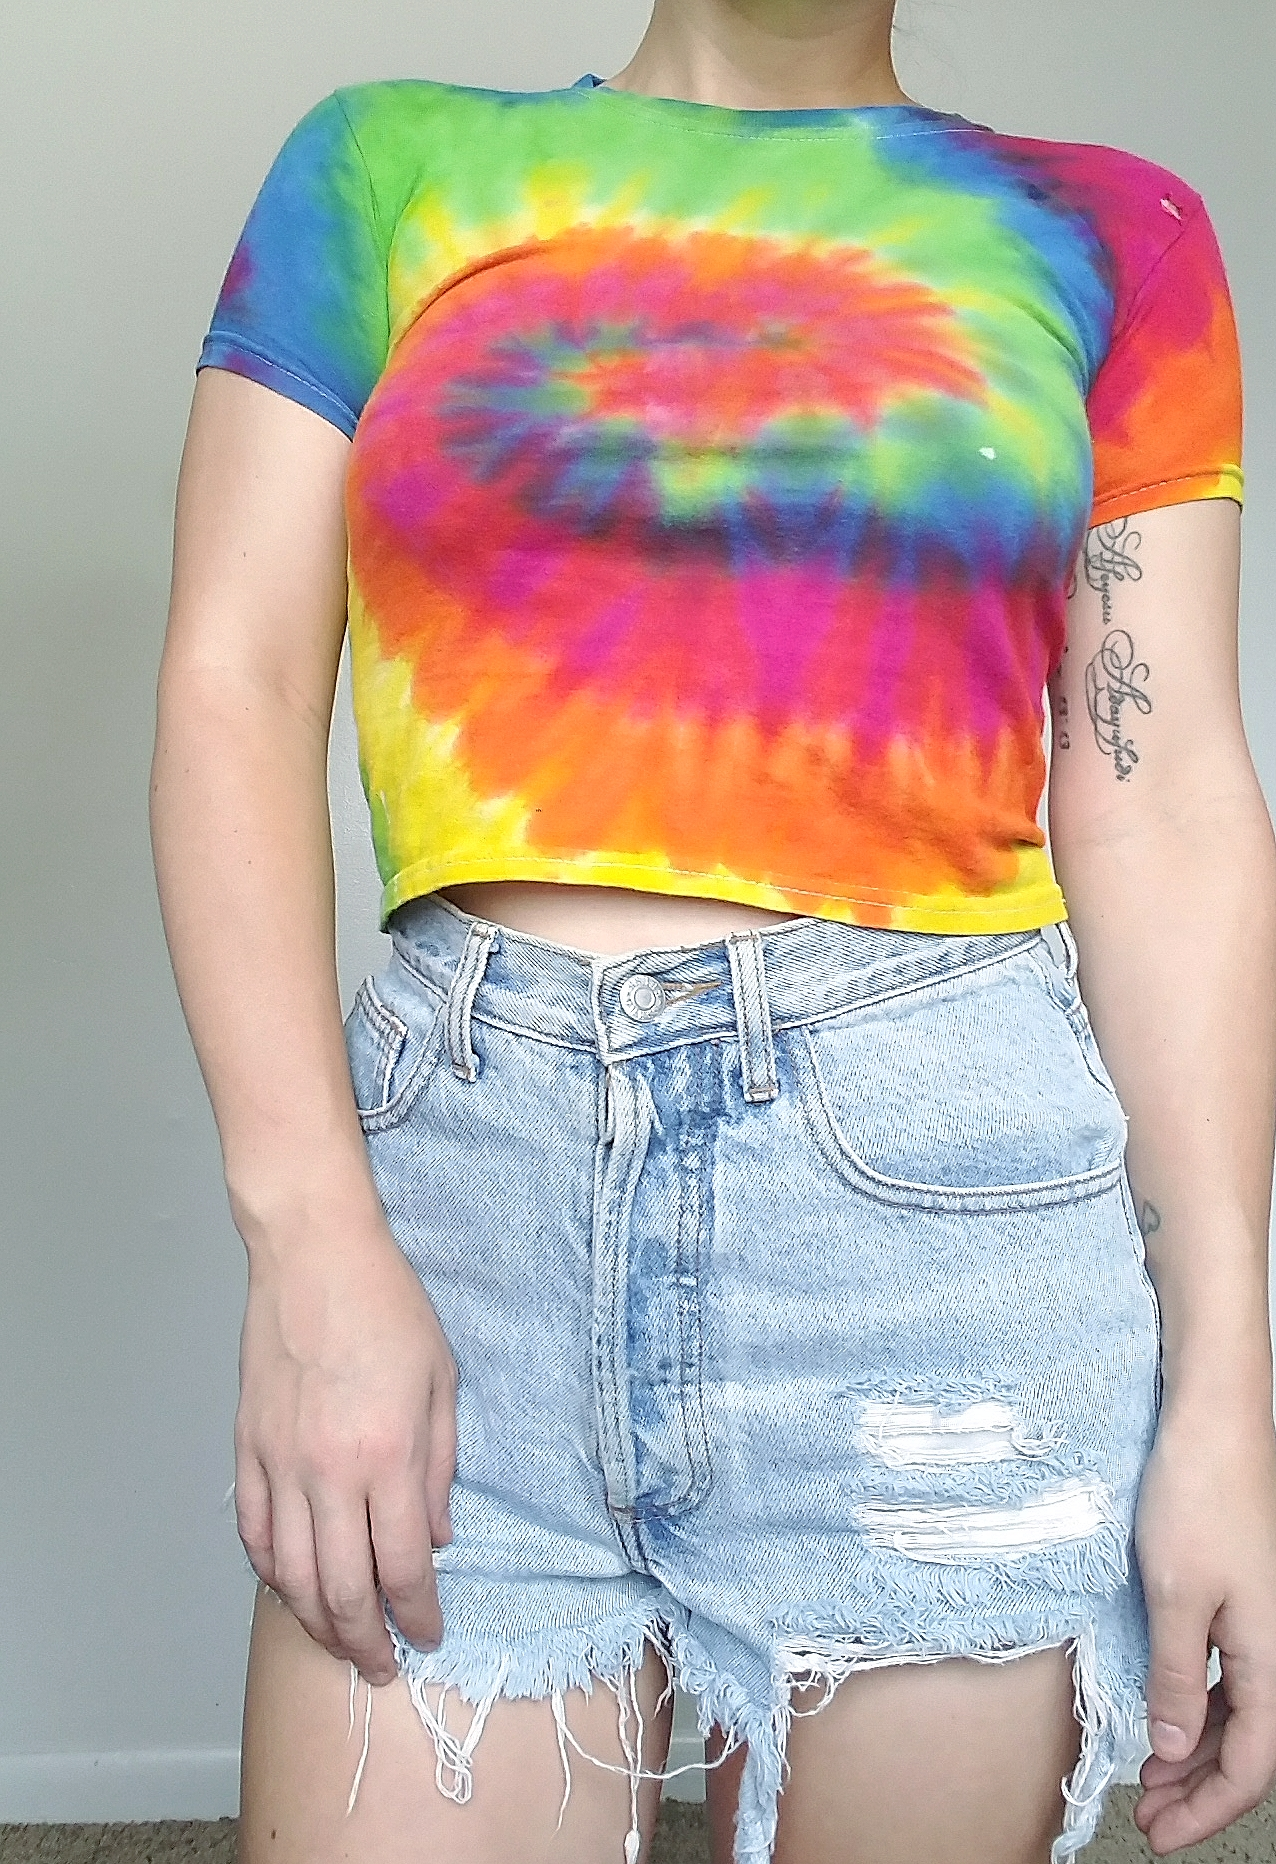 ca507c88911be 90 s Neon Tie Dye Crop Top - Vintage Rainbow Cropped Top - X Small ...